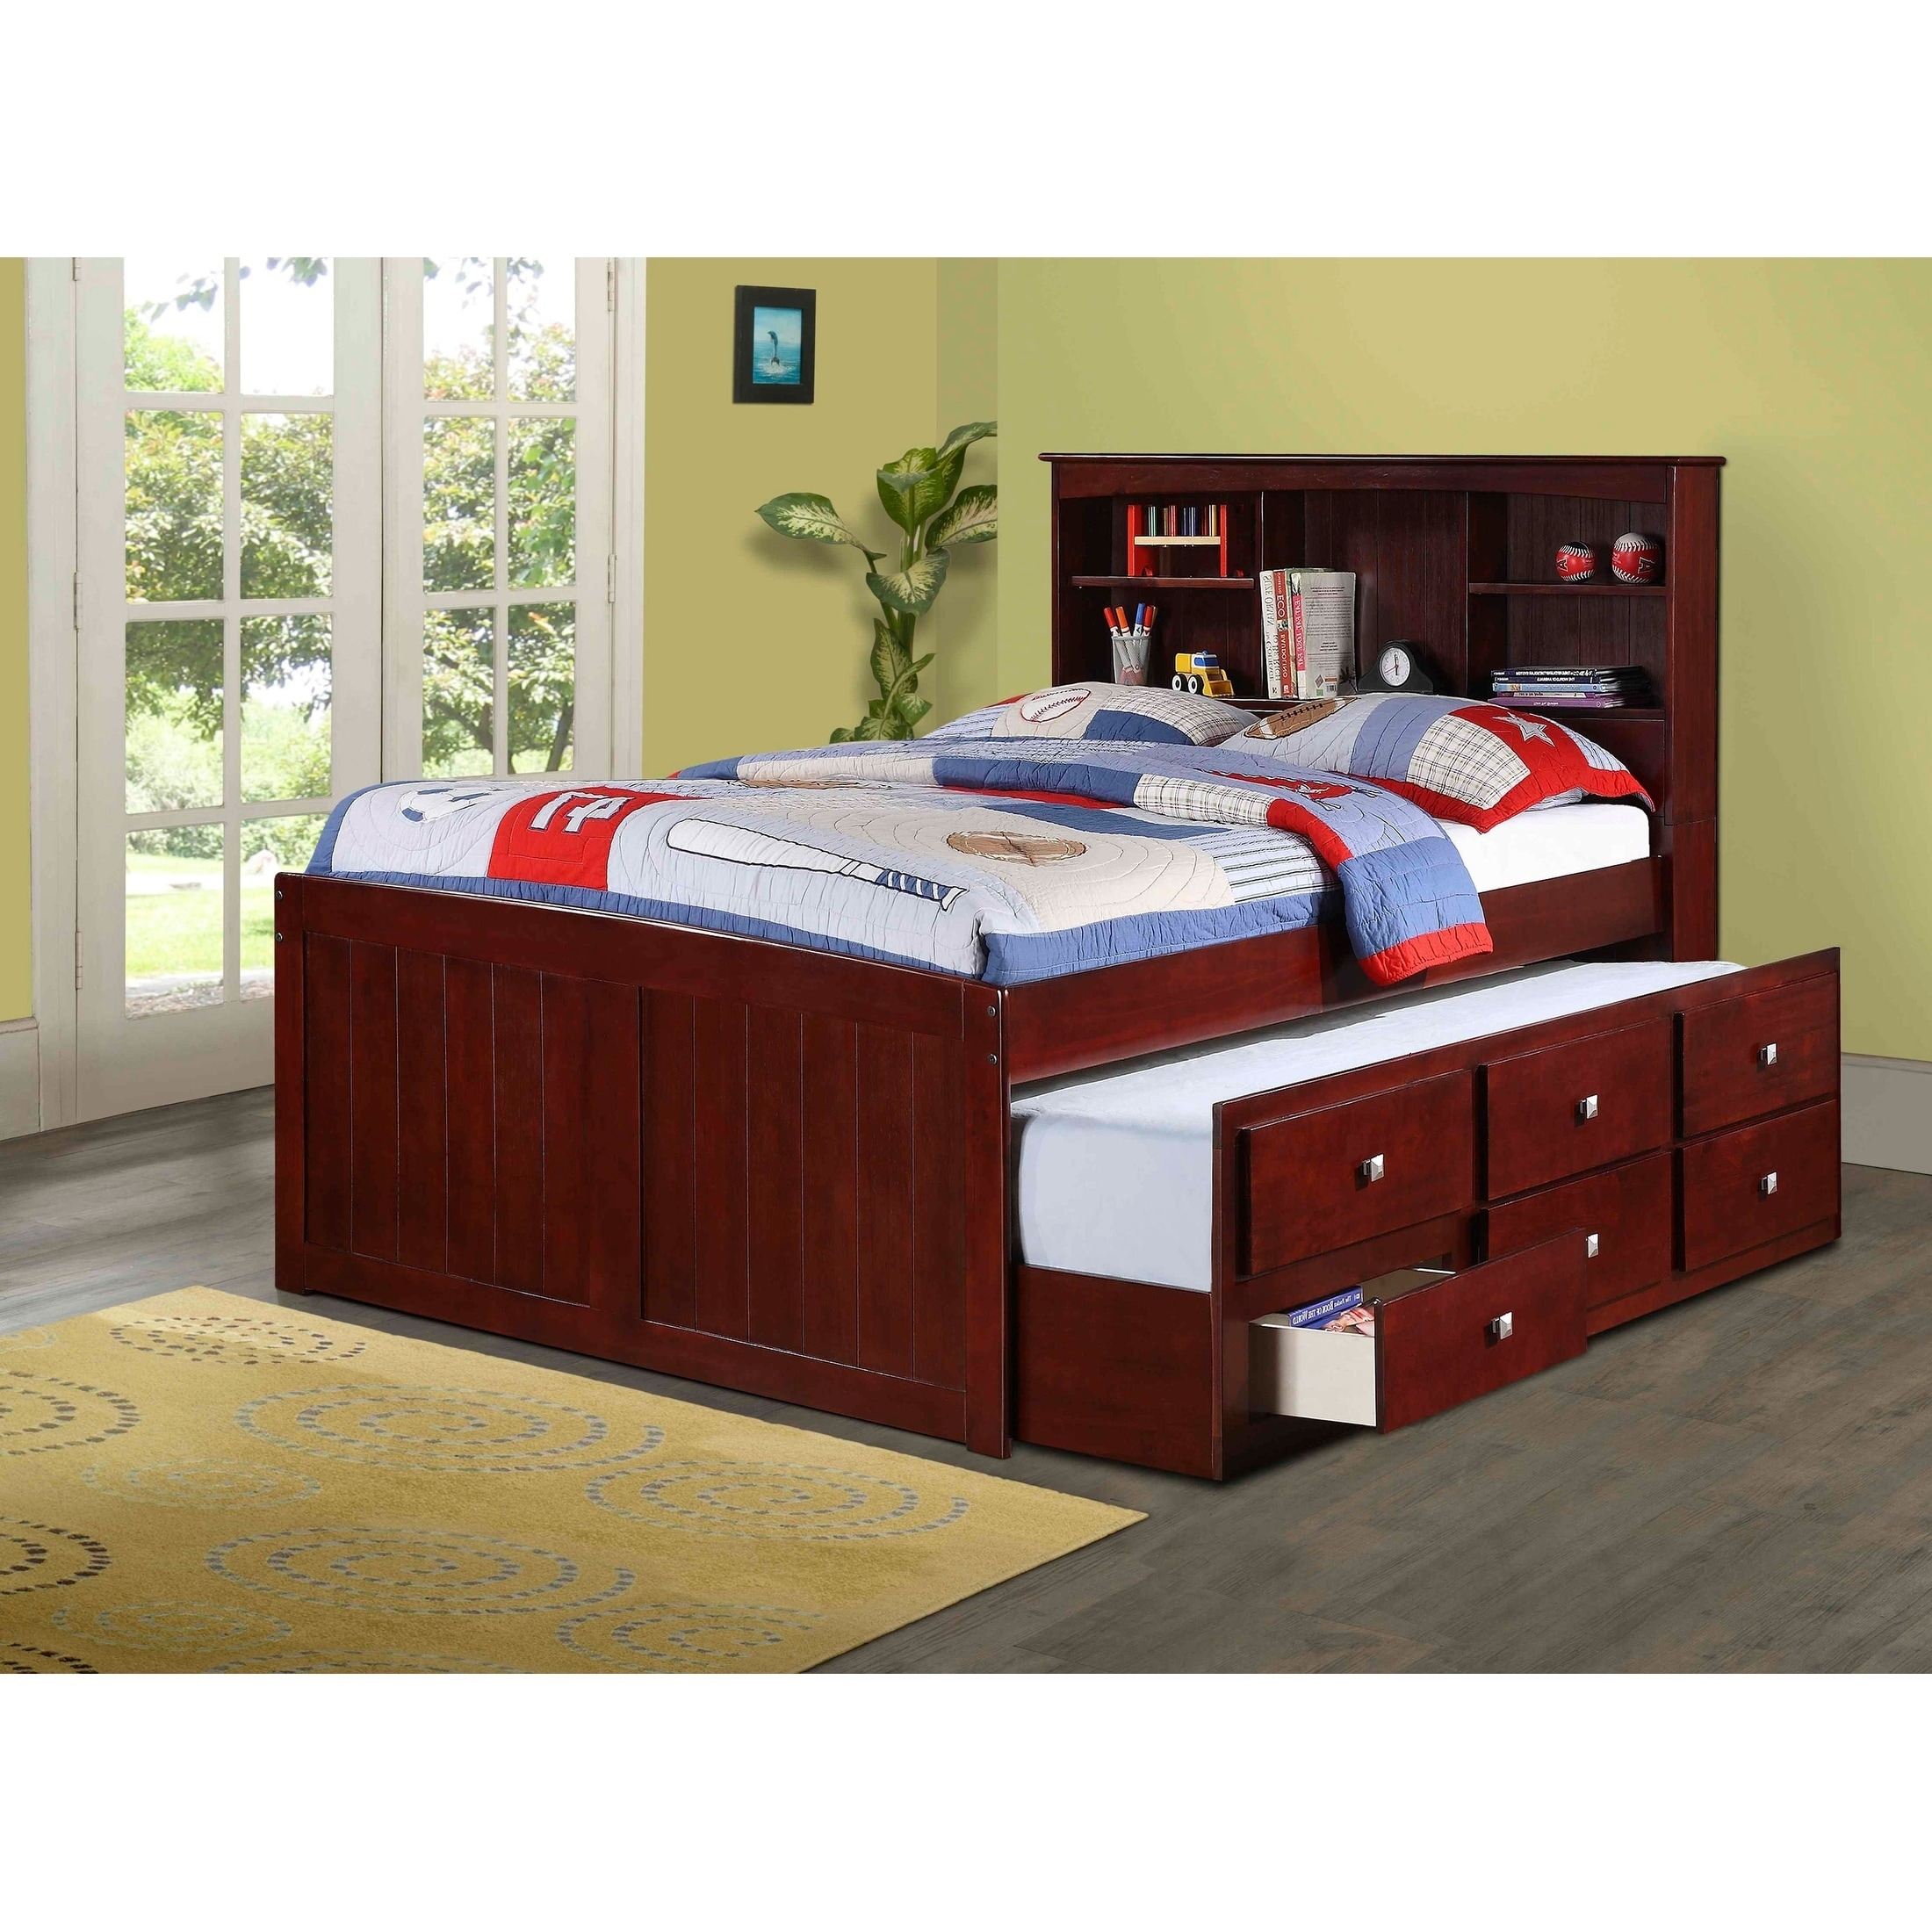 Shop Black Friday Deals On Donco Kids Bookcase Captains Dark Cappuccino Trundle Bed On Sale Overstock 13863817 Cappuccino Twin With Twin Trundle